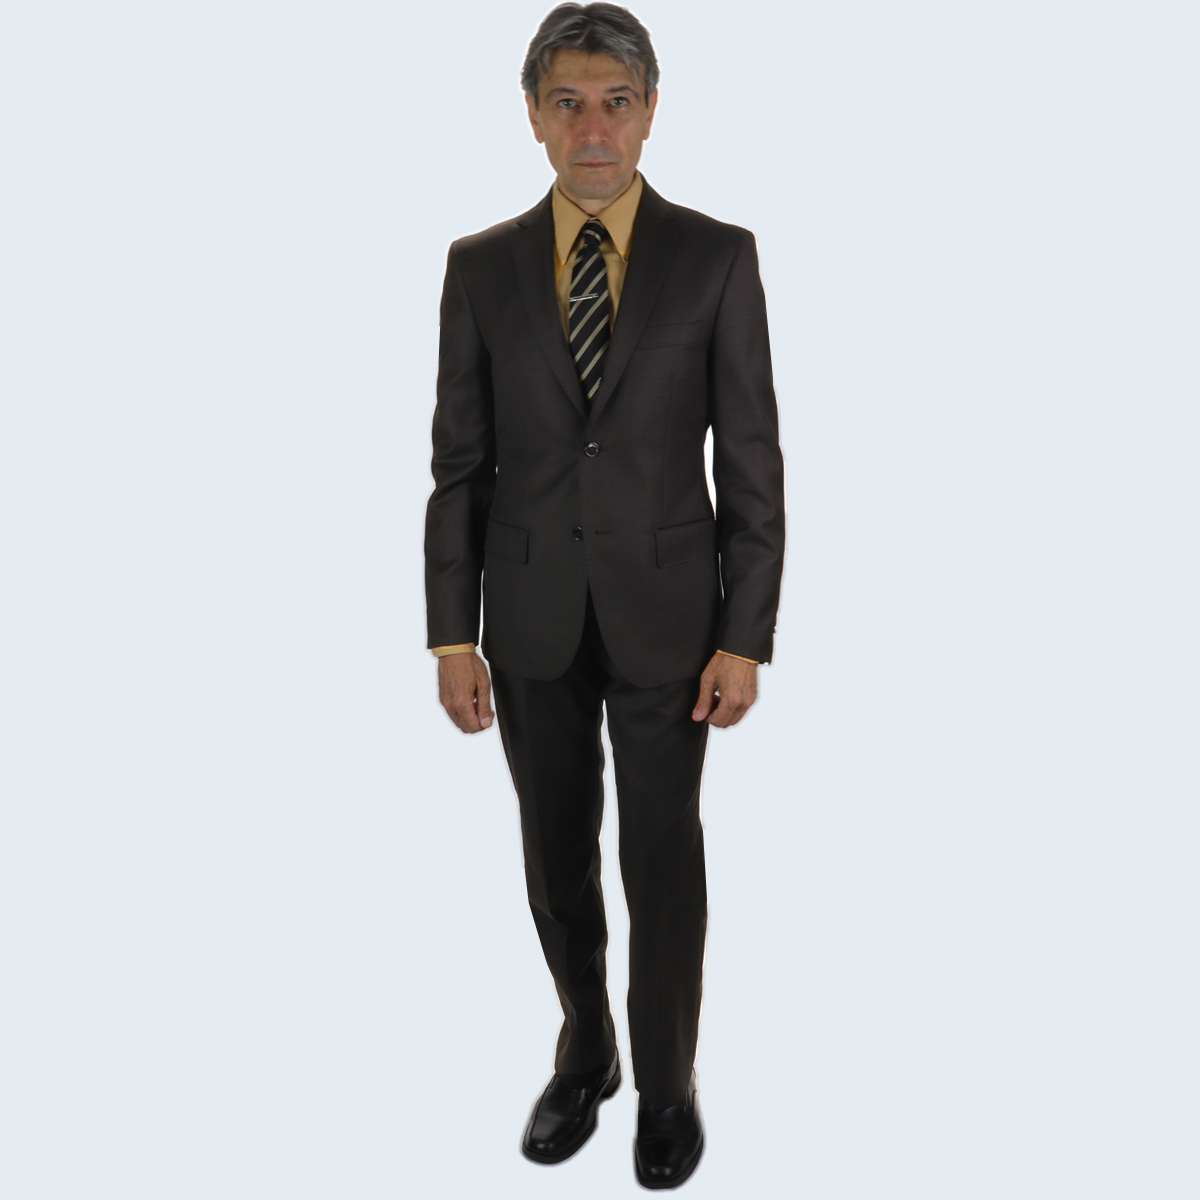 lined to knee Navy Comfort  quality 100/% Wool Dress Pants Men/'s  Mantoni Italy